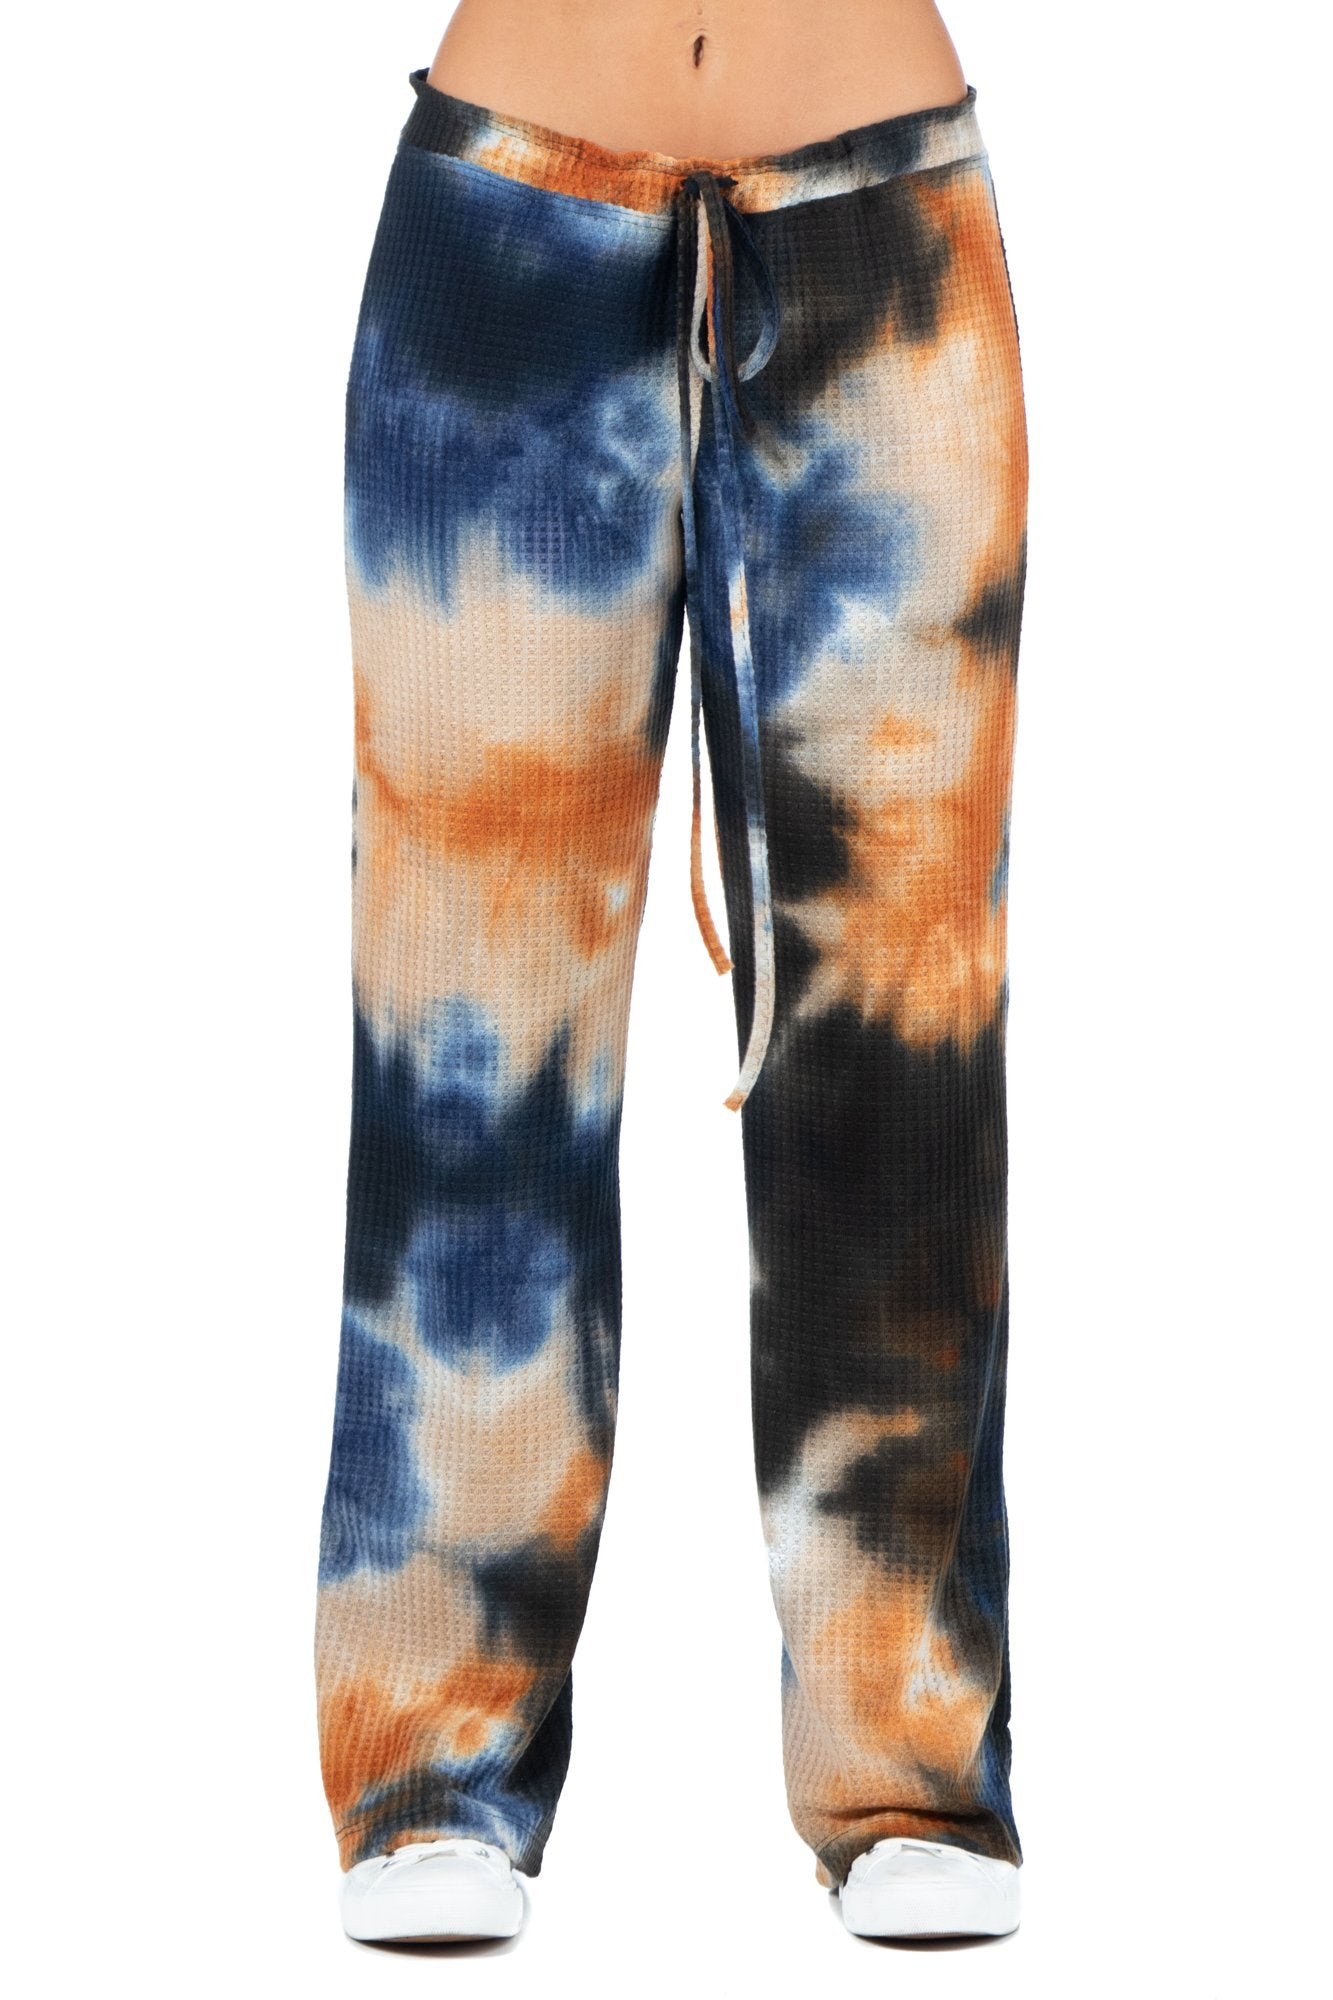 24seven Comfort Apparel Waffle Fabric Tie Dye Drawstring Lounge Pants